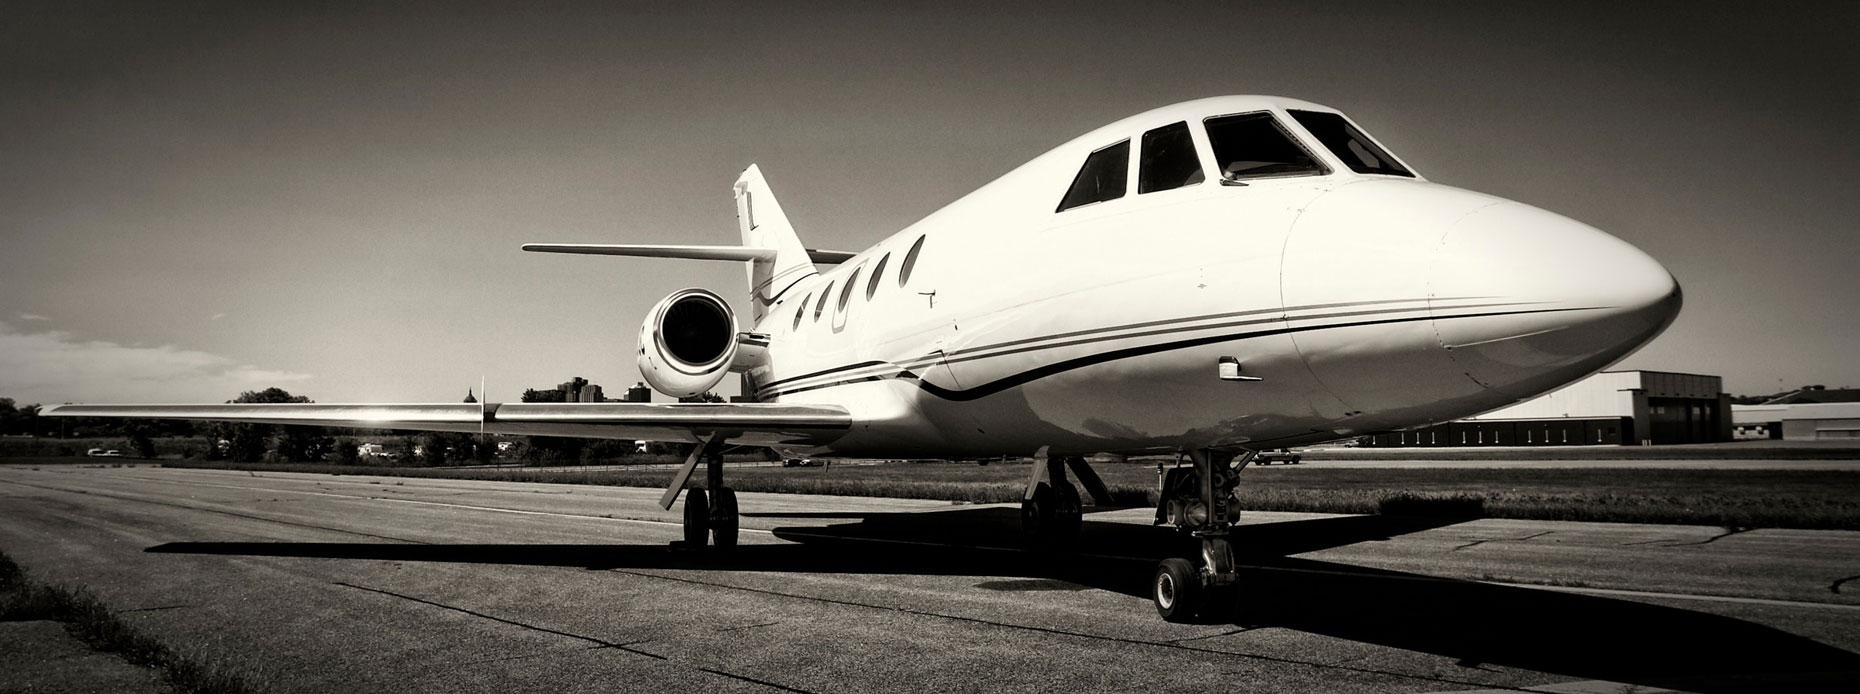 Private jet/b&w/wide angle pannoramic/runway/aviation photography